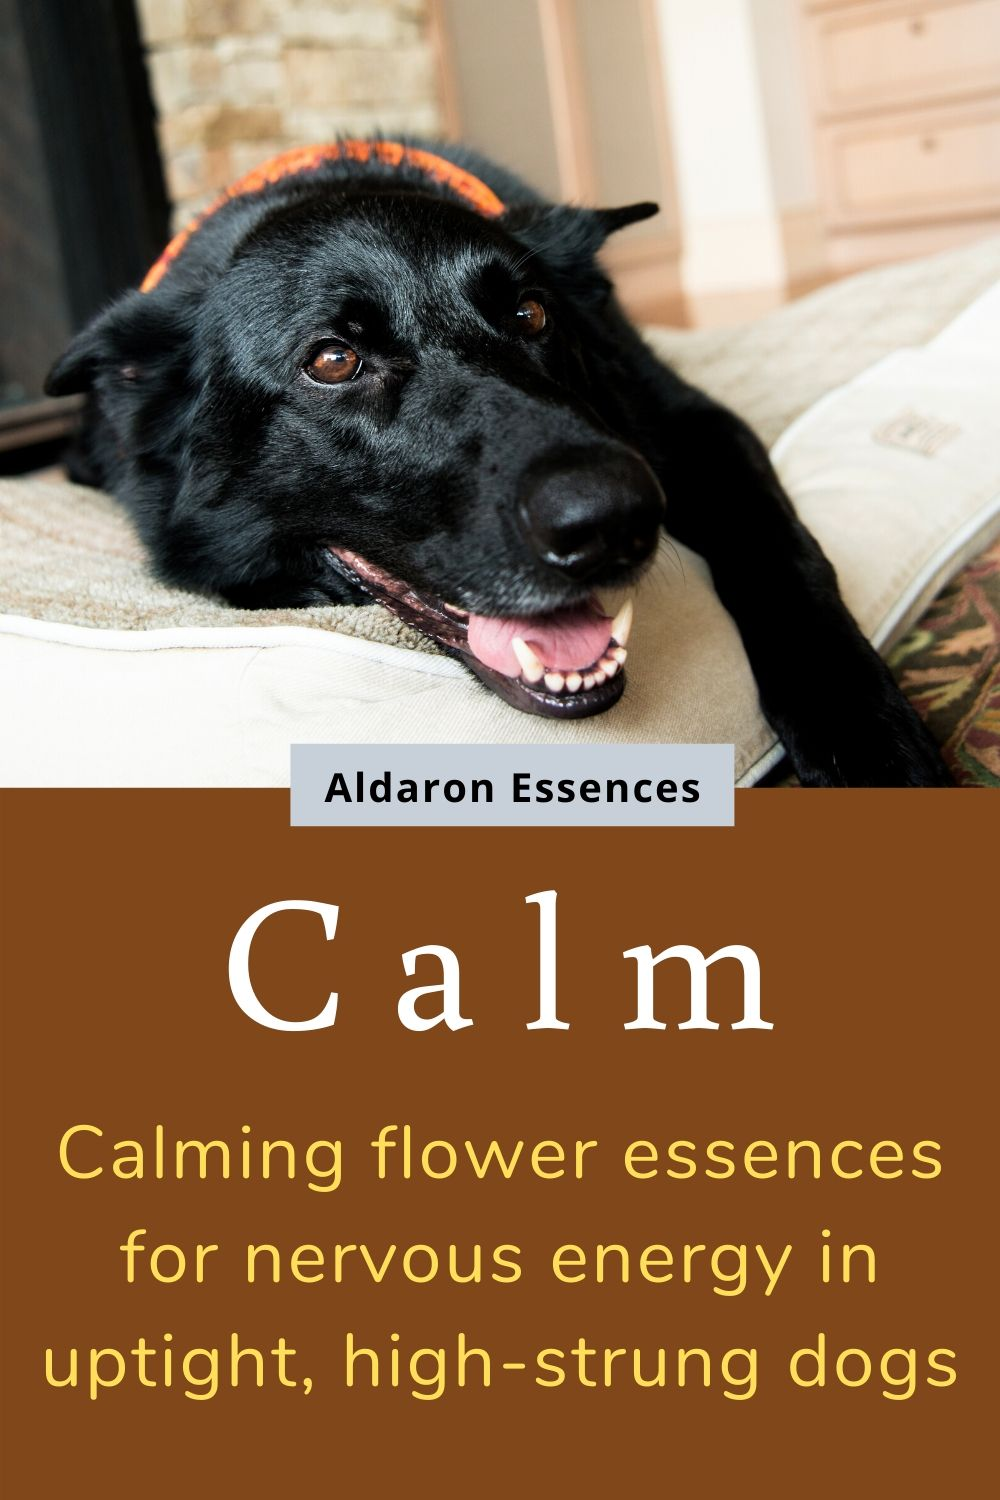 calm-flower-remedies-for-high-strung-dogs-aldaron-essences.jpg